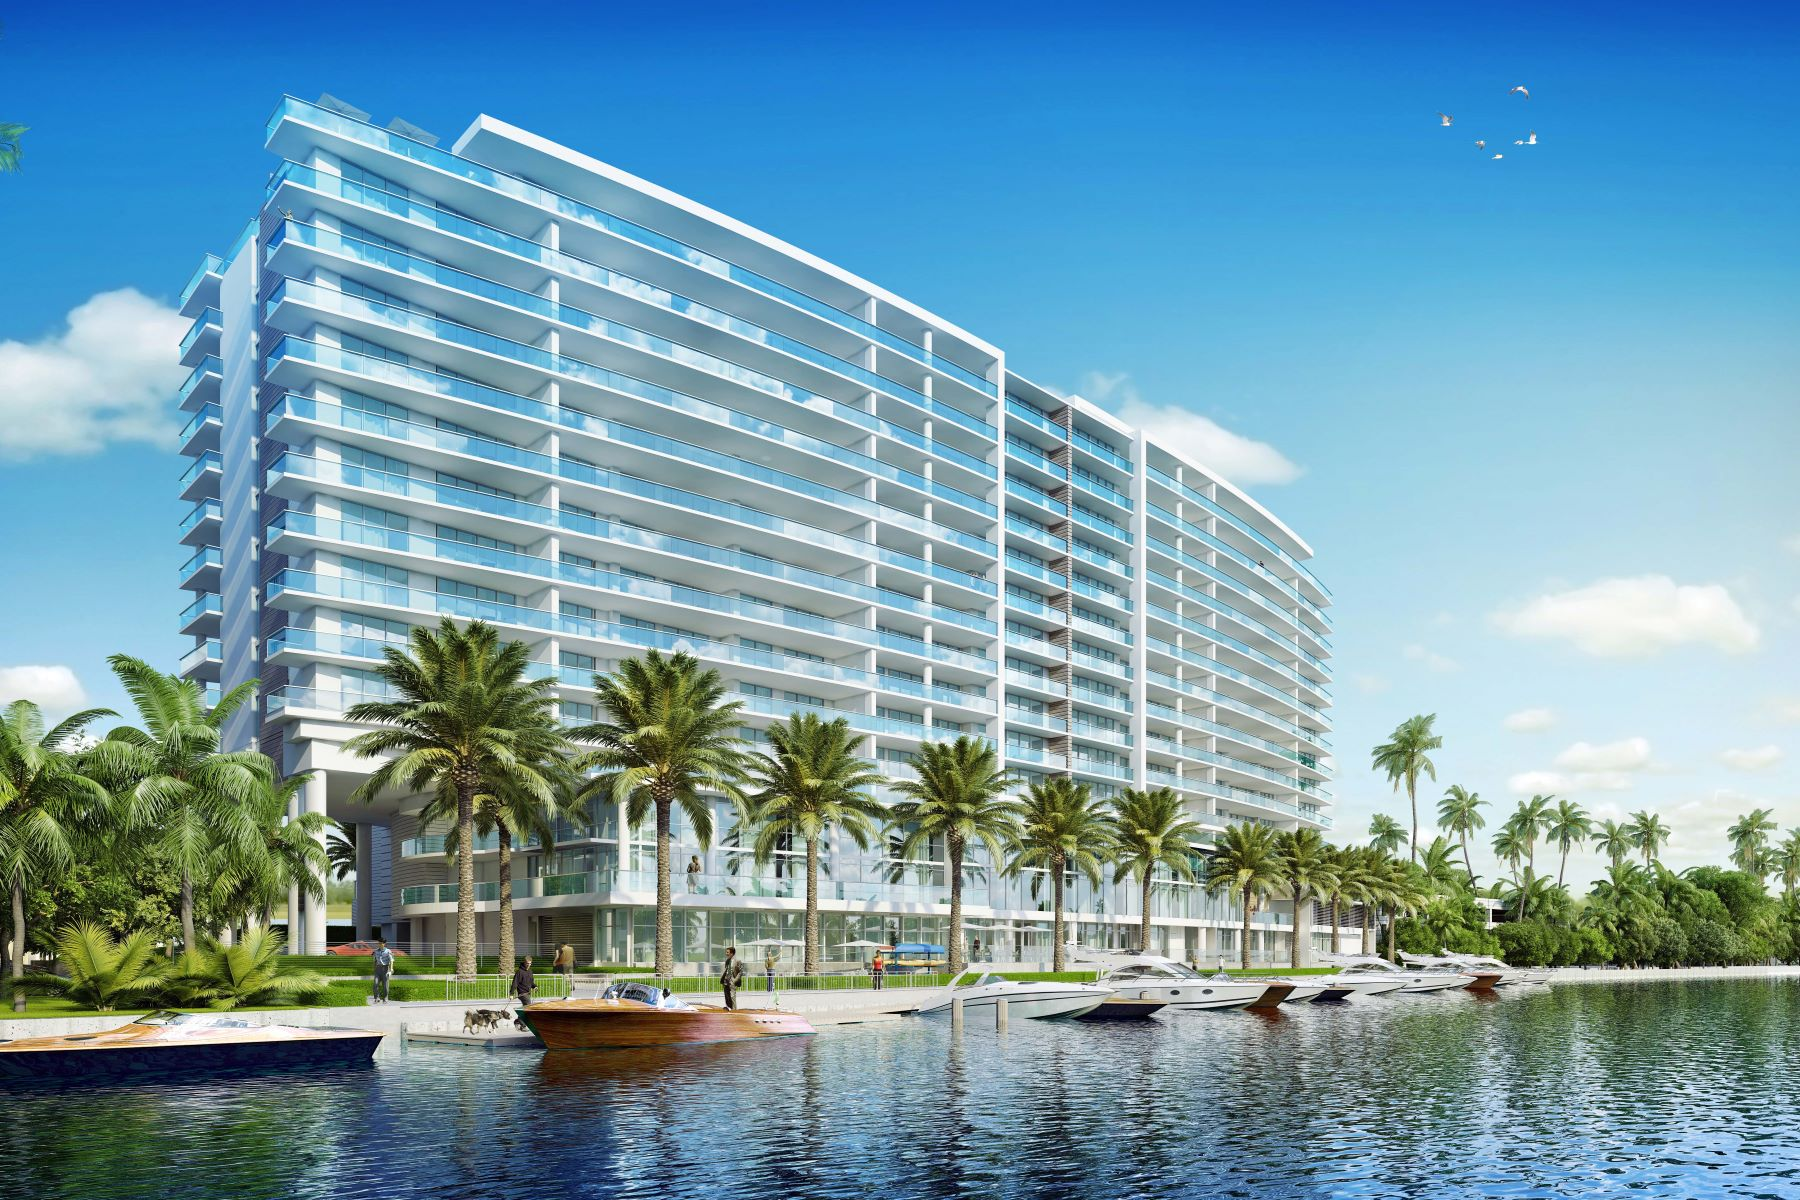 Apartment for Sale at 1180 N Federal Hwy #Ph1502 1180 N Federal Hwy PH1502 Fort Lauderdale, Florida, 33304 United States